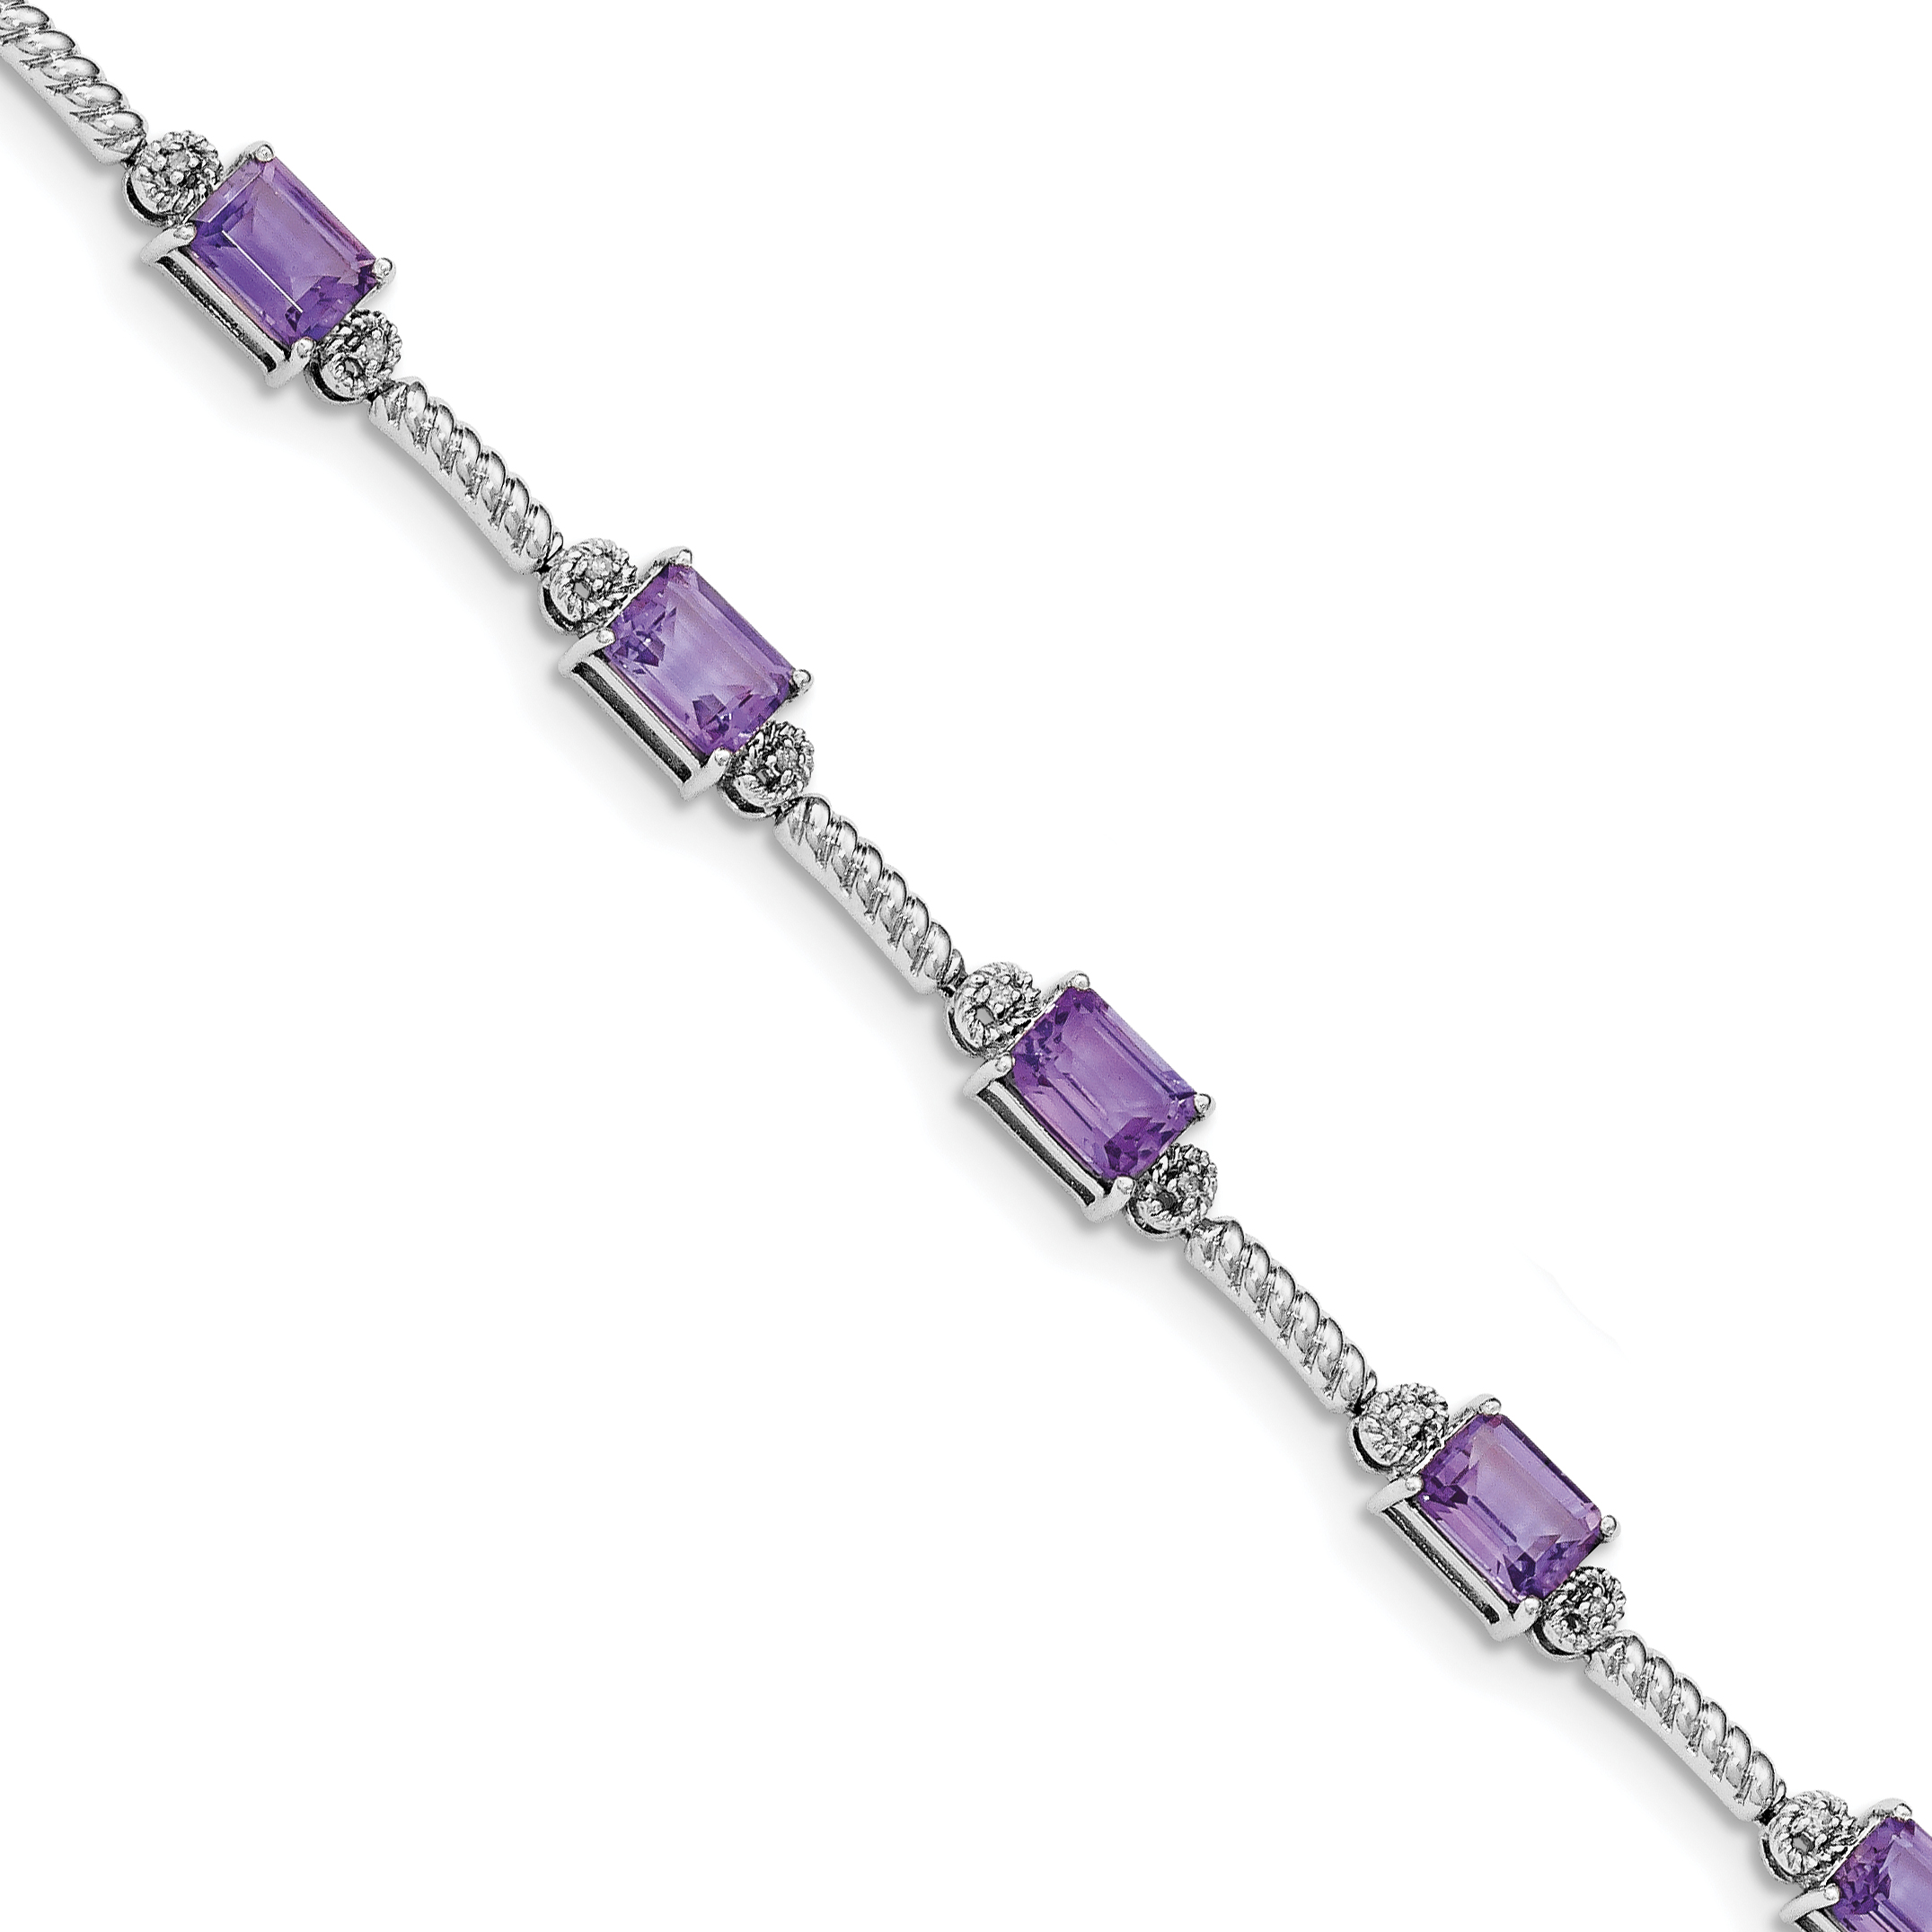 Sterling Silver Rhodium-plated Amethyst & Diamond Tennis Bracelet by Core Silver